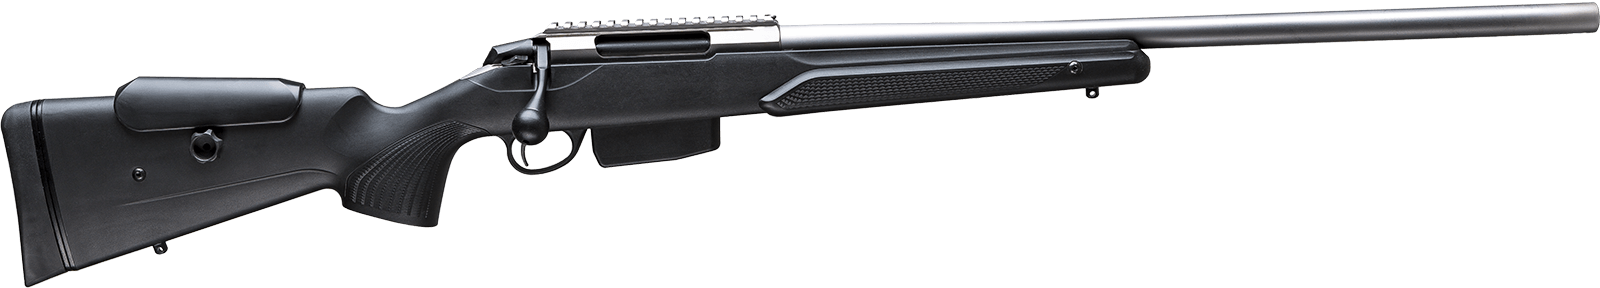 https://www.nepo.sk/tmp/import/products//tikka_t3x_super_varmint.png | Nepo